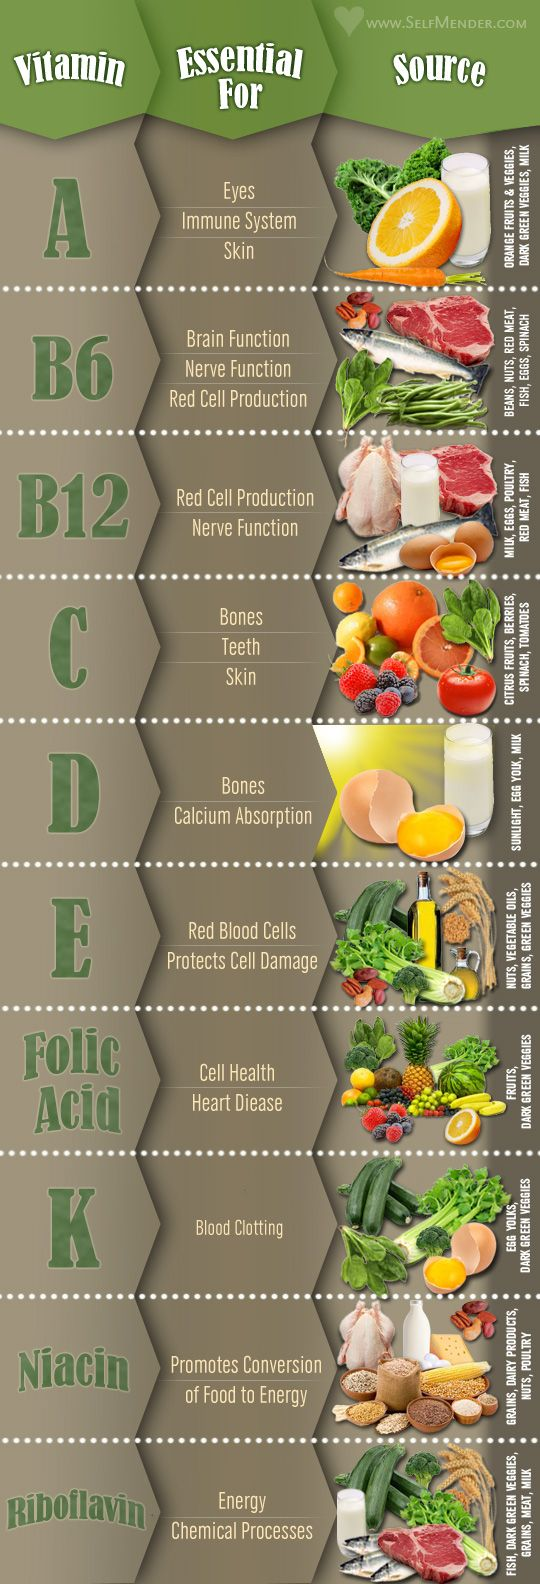 Food with vitamins, what they are essential for and a photo visual of the food source